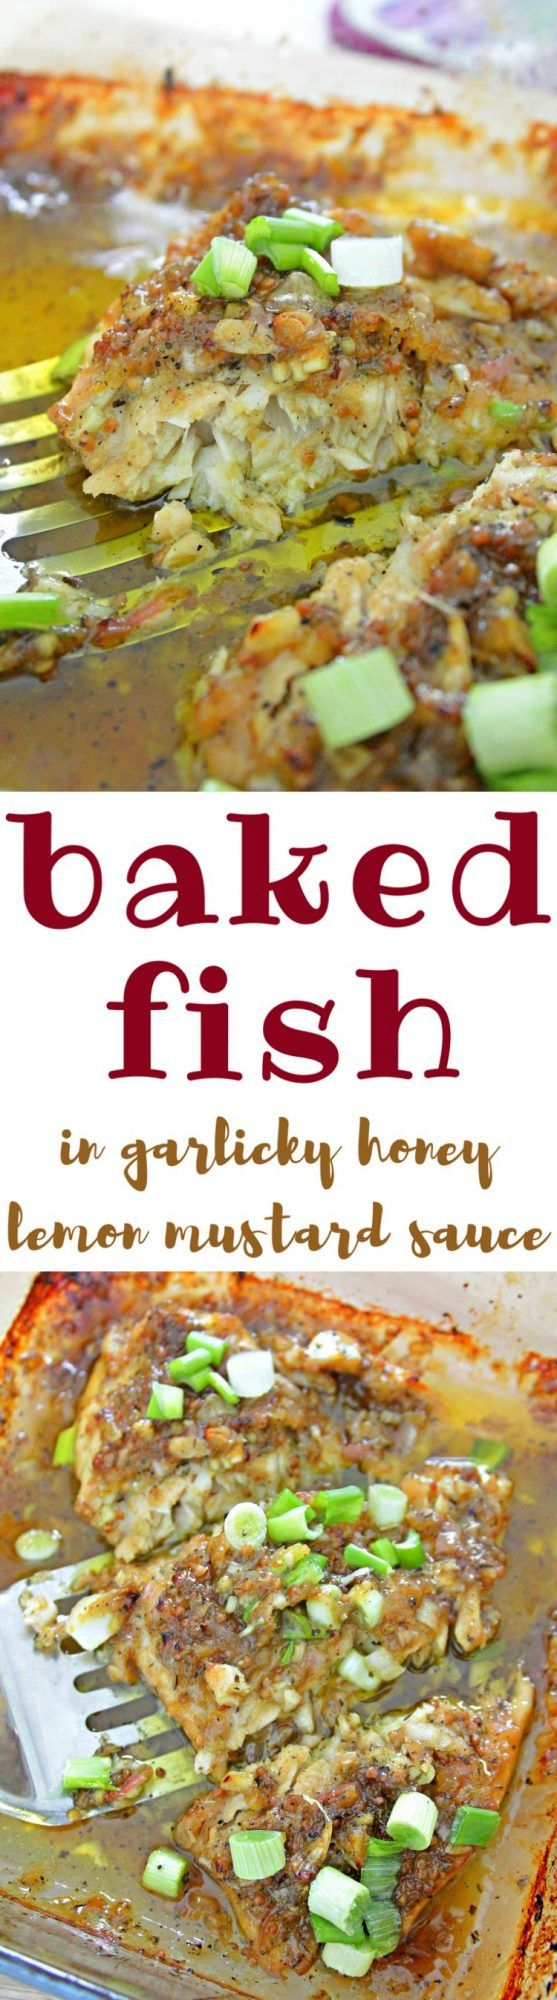 BAKED HONEY MUSTARD FISH RECIPE - Make this honey mustard fish for an easy and special meal! Marinated in honey mustard lemon sauce for the juiciest, most flavorful fish you'll ever make!  #fish #fishrecipes #bakedfish #food #recipes #recipeoftheday #recipeideas #foodblogger #foodlover